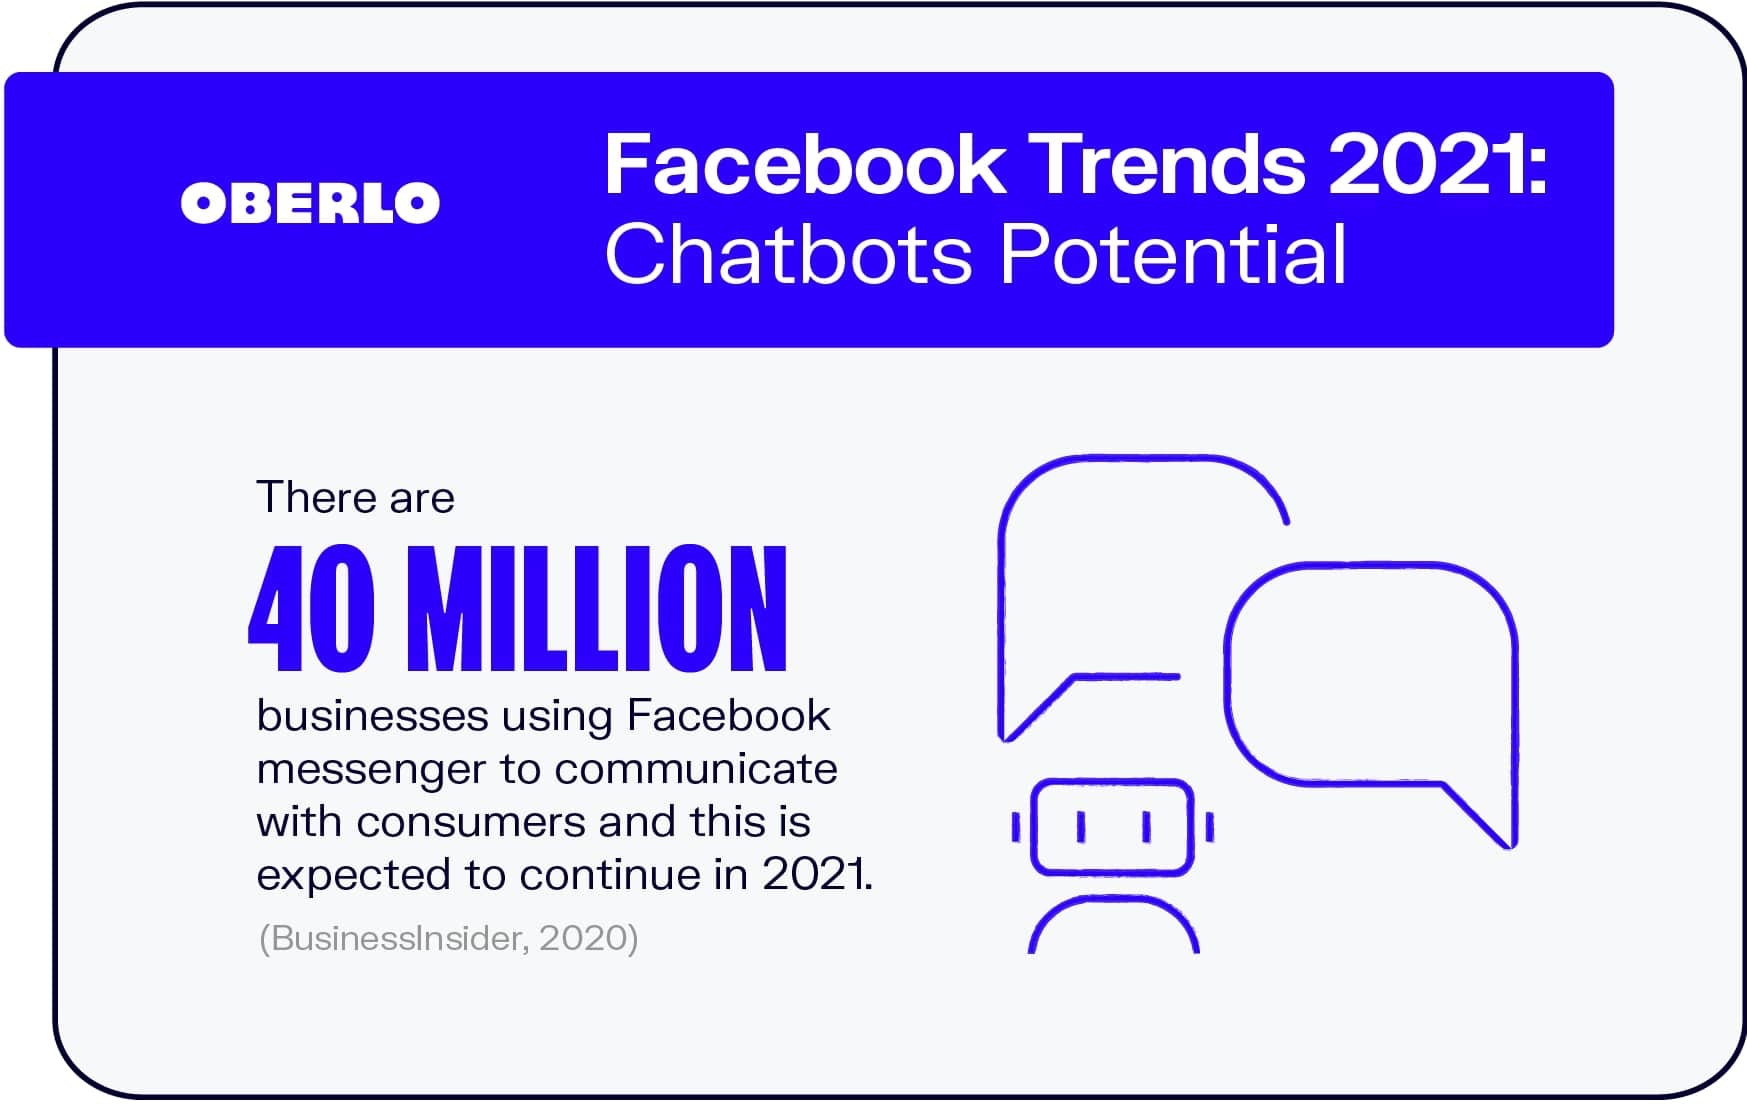 Facebook Trends 2021: Chatbots Potential